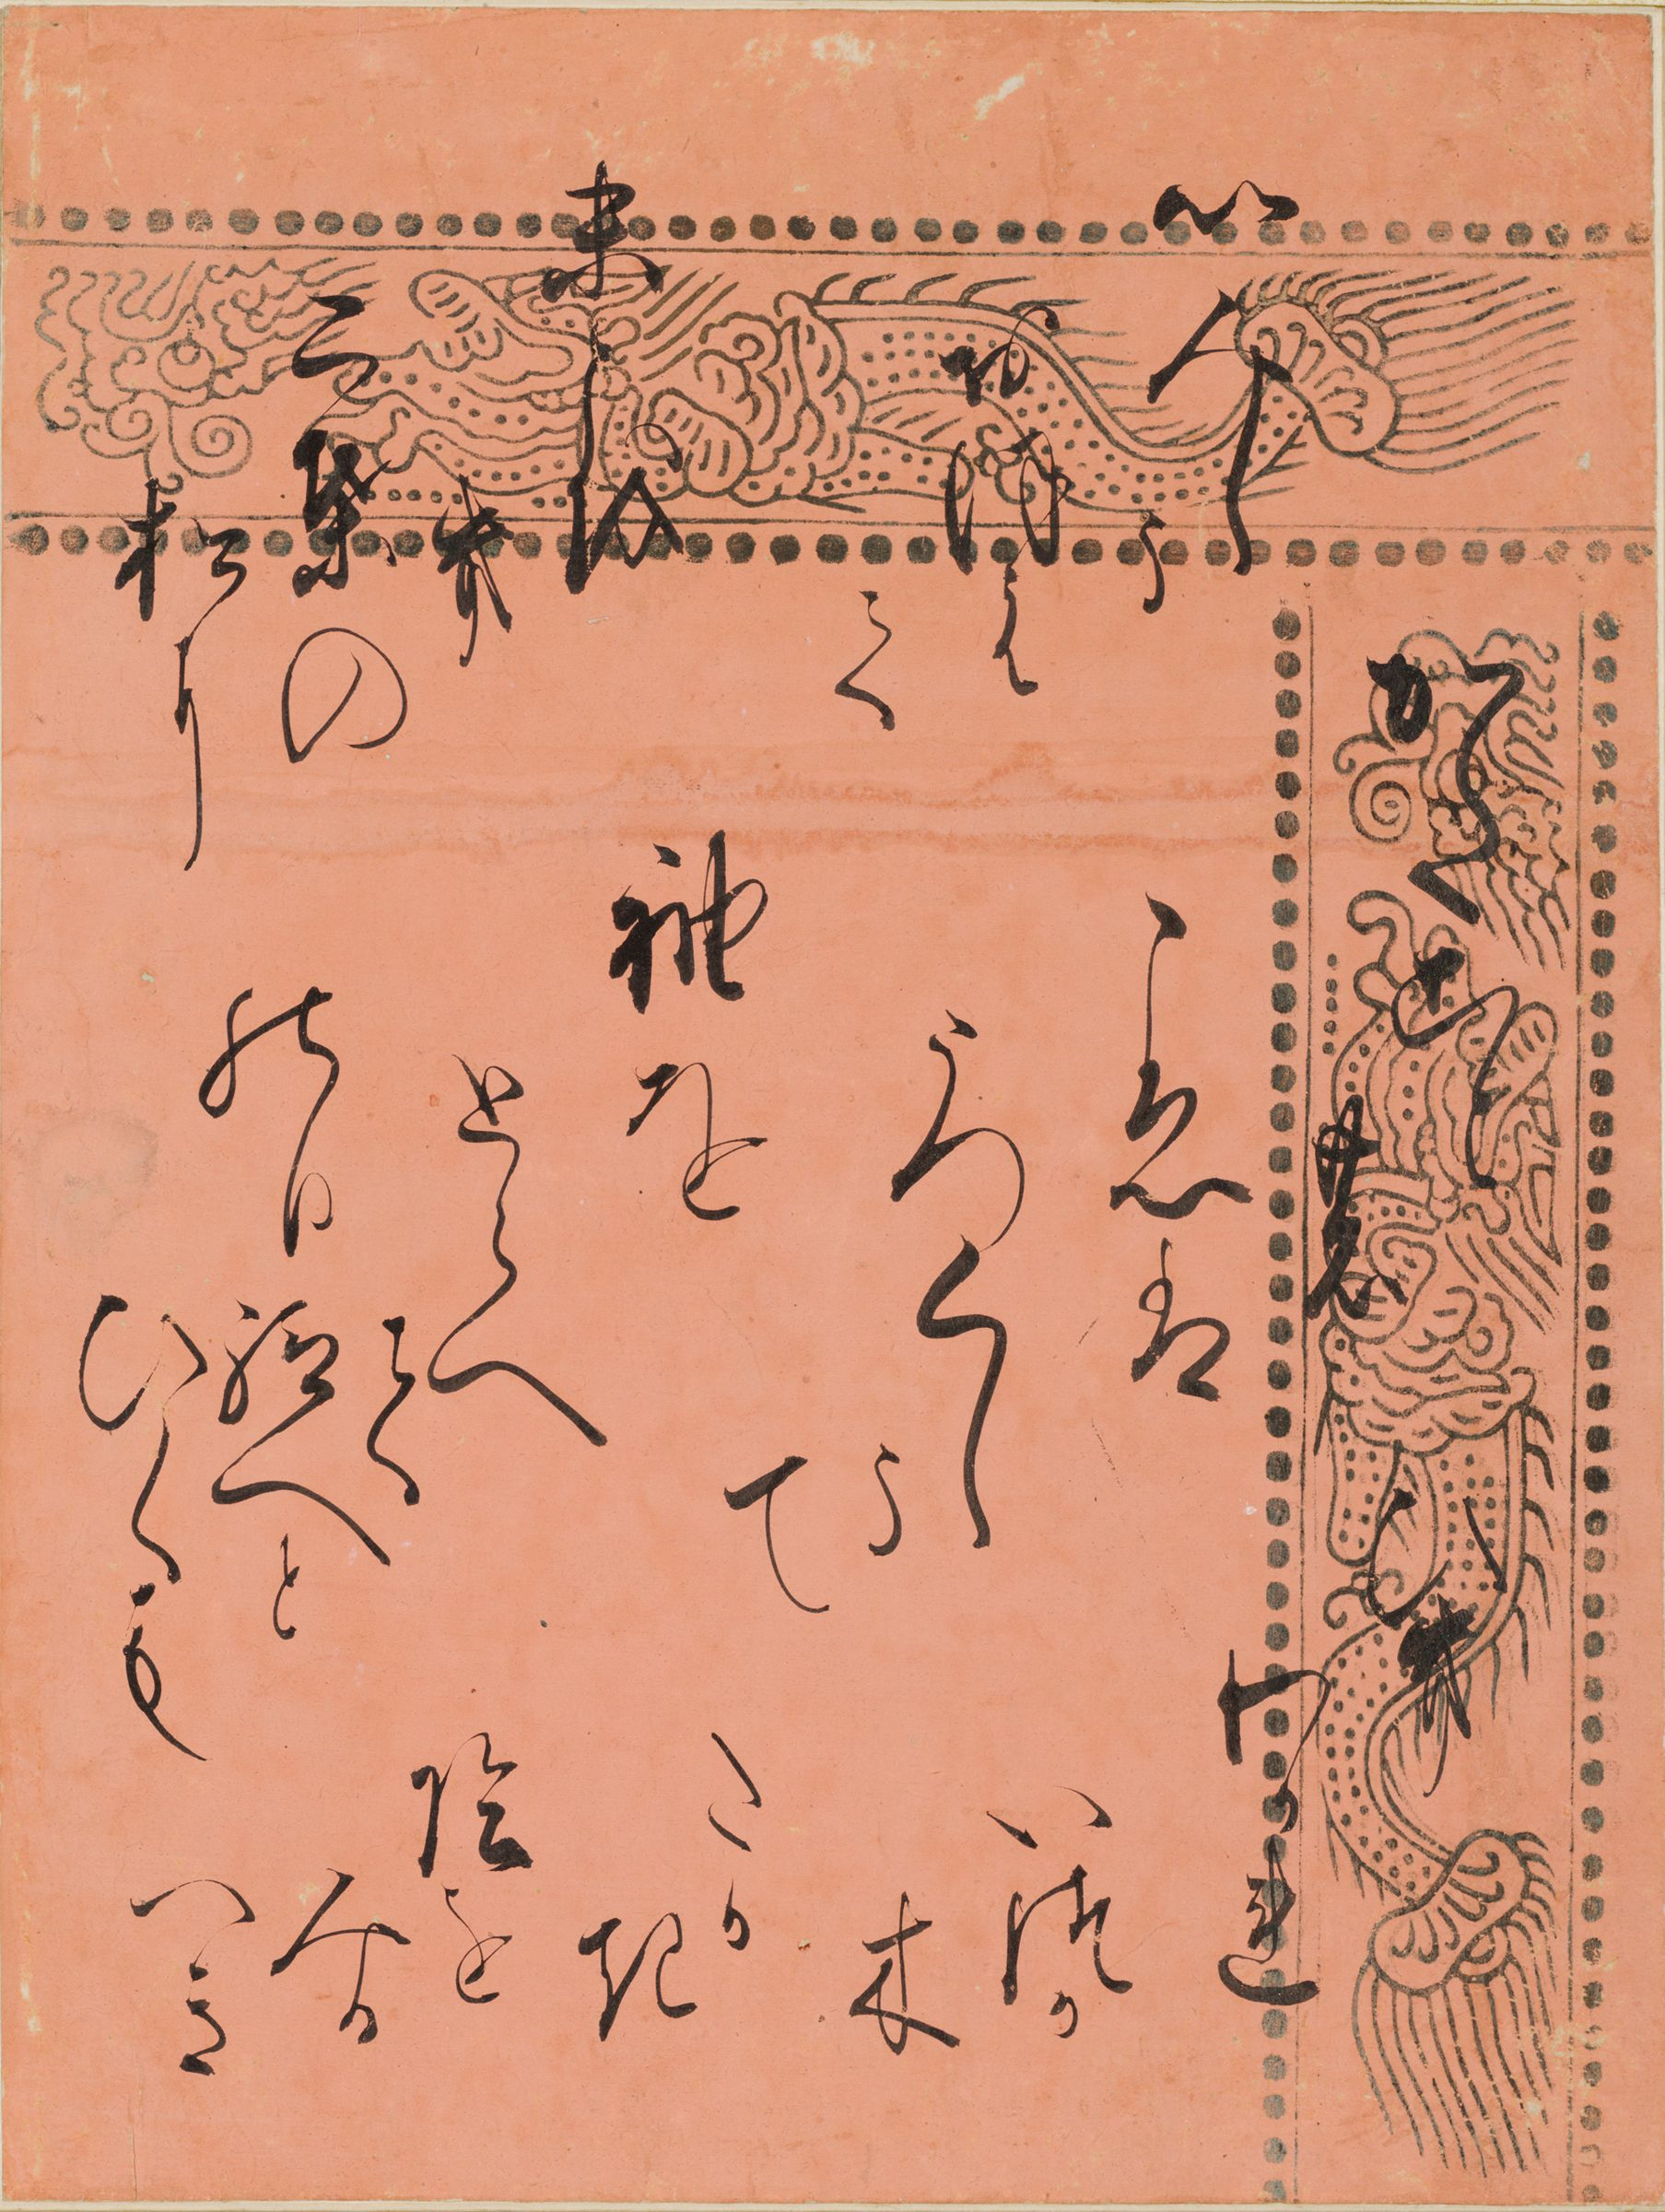 Wisps Of Cloud (Usugumo), Calligraphic Excerpt From Chapter 19 Of The Tale Of Genji (Genji Monogatari)